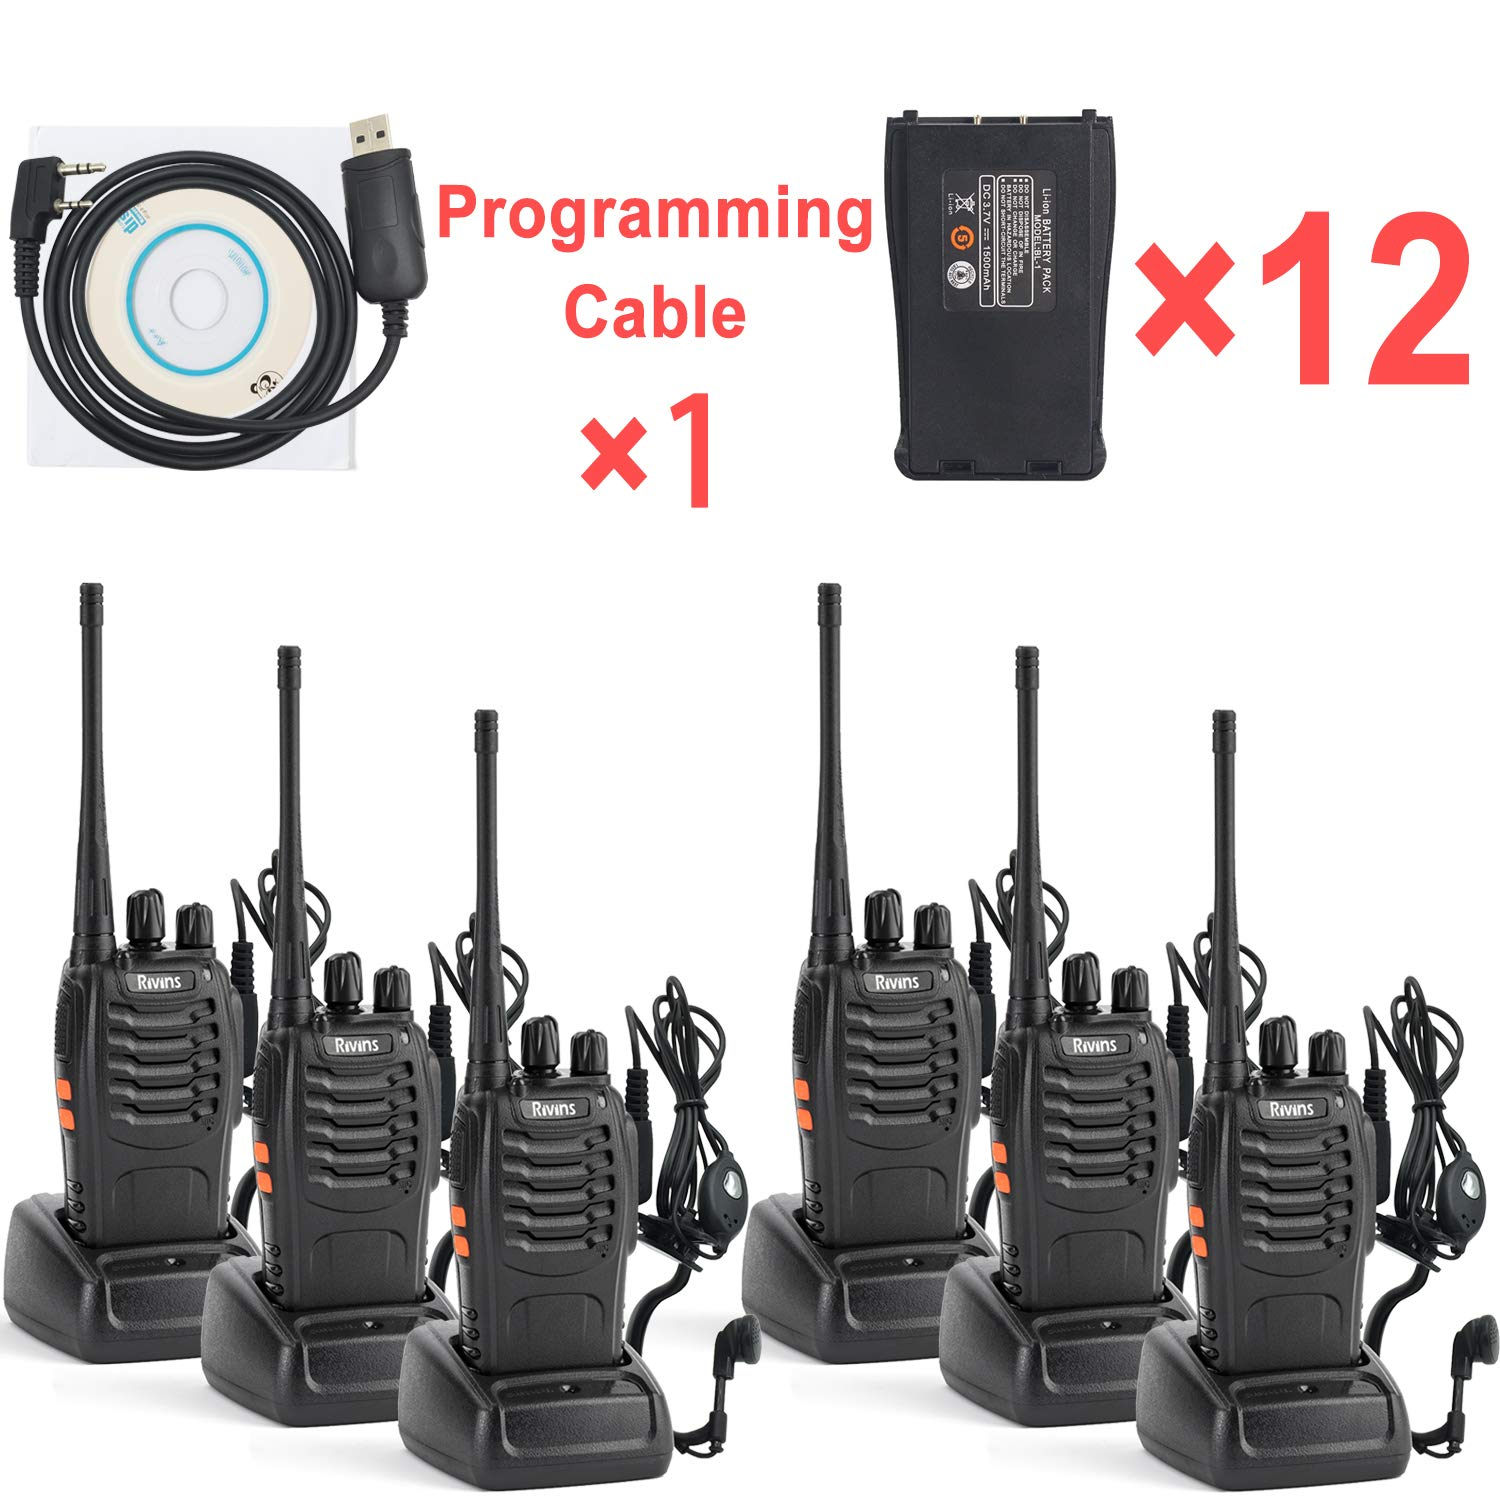 Radio Walkie Talkies Long Range Set 6 Pack Rechargeable for Adults – Two-Way Radios with Programming Cable and Earpiece – 1 More Extra Battery for Each Radio